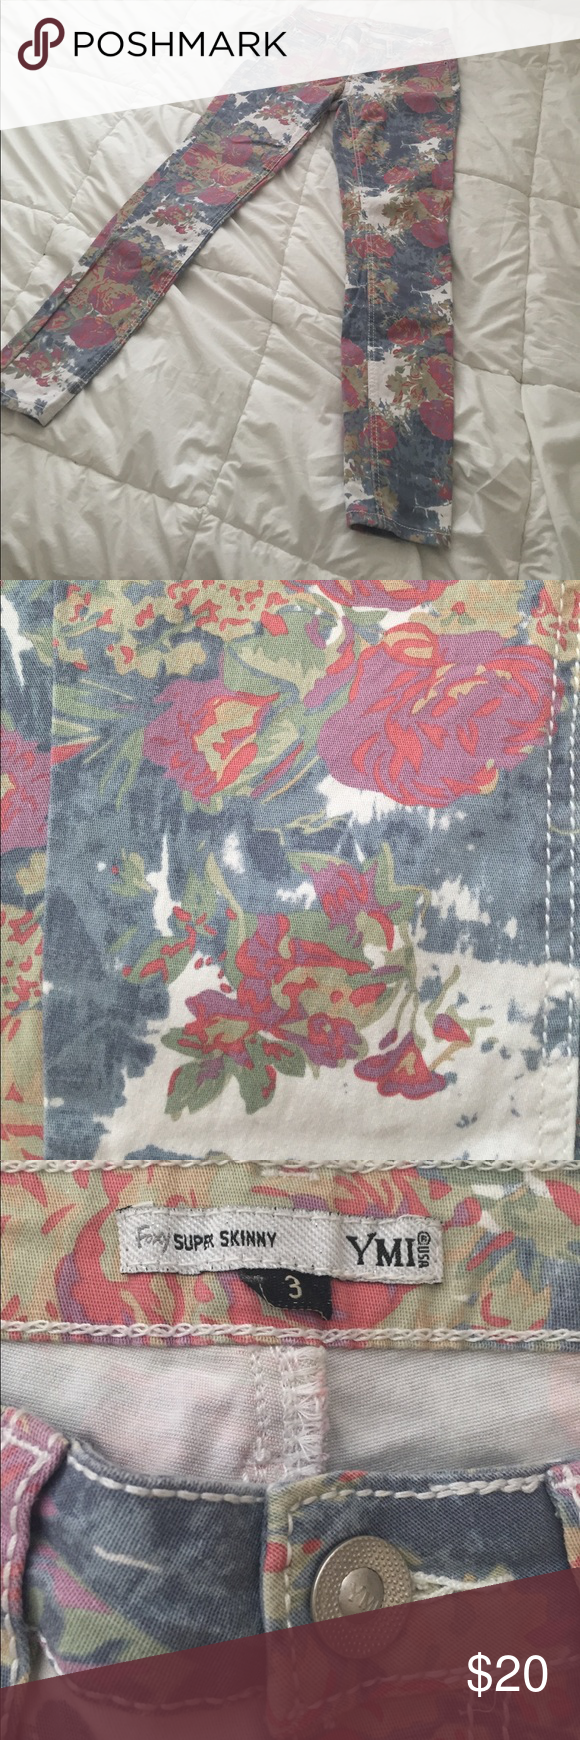 Floral skinny jeans Like new! YMI super skinny floral jeans! Perfect for summer! YMI Jeans Skinny